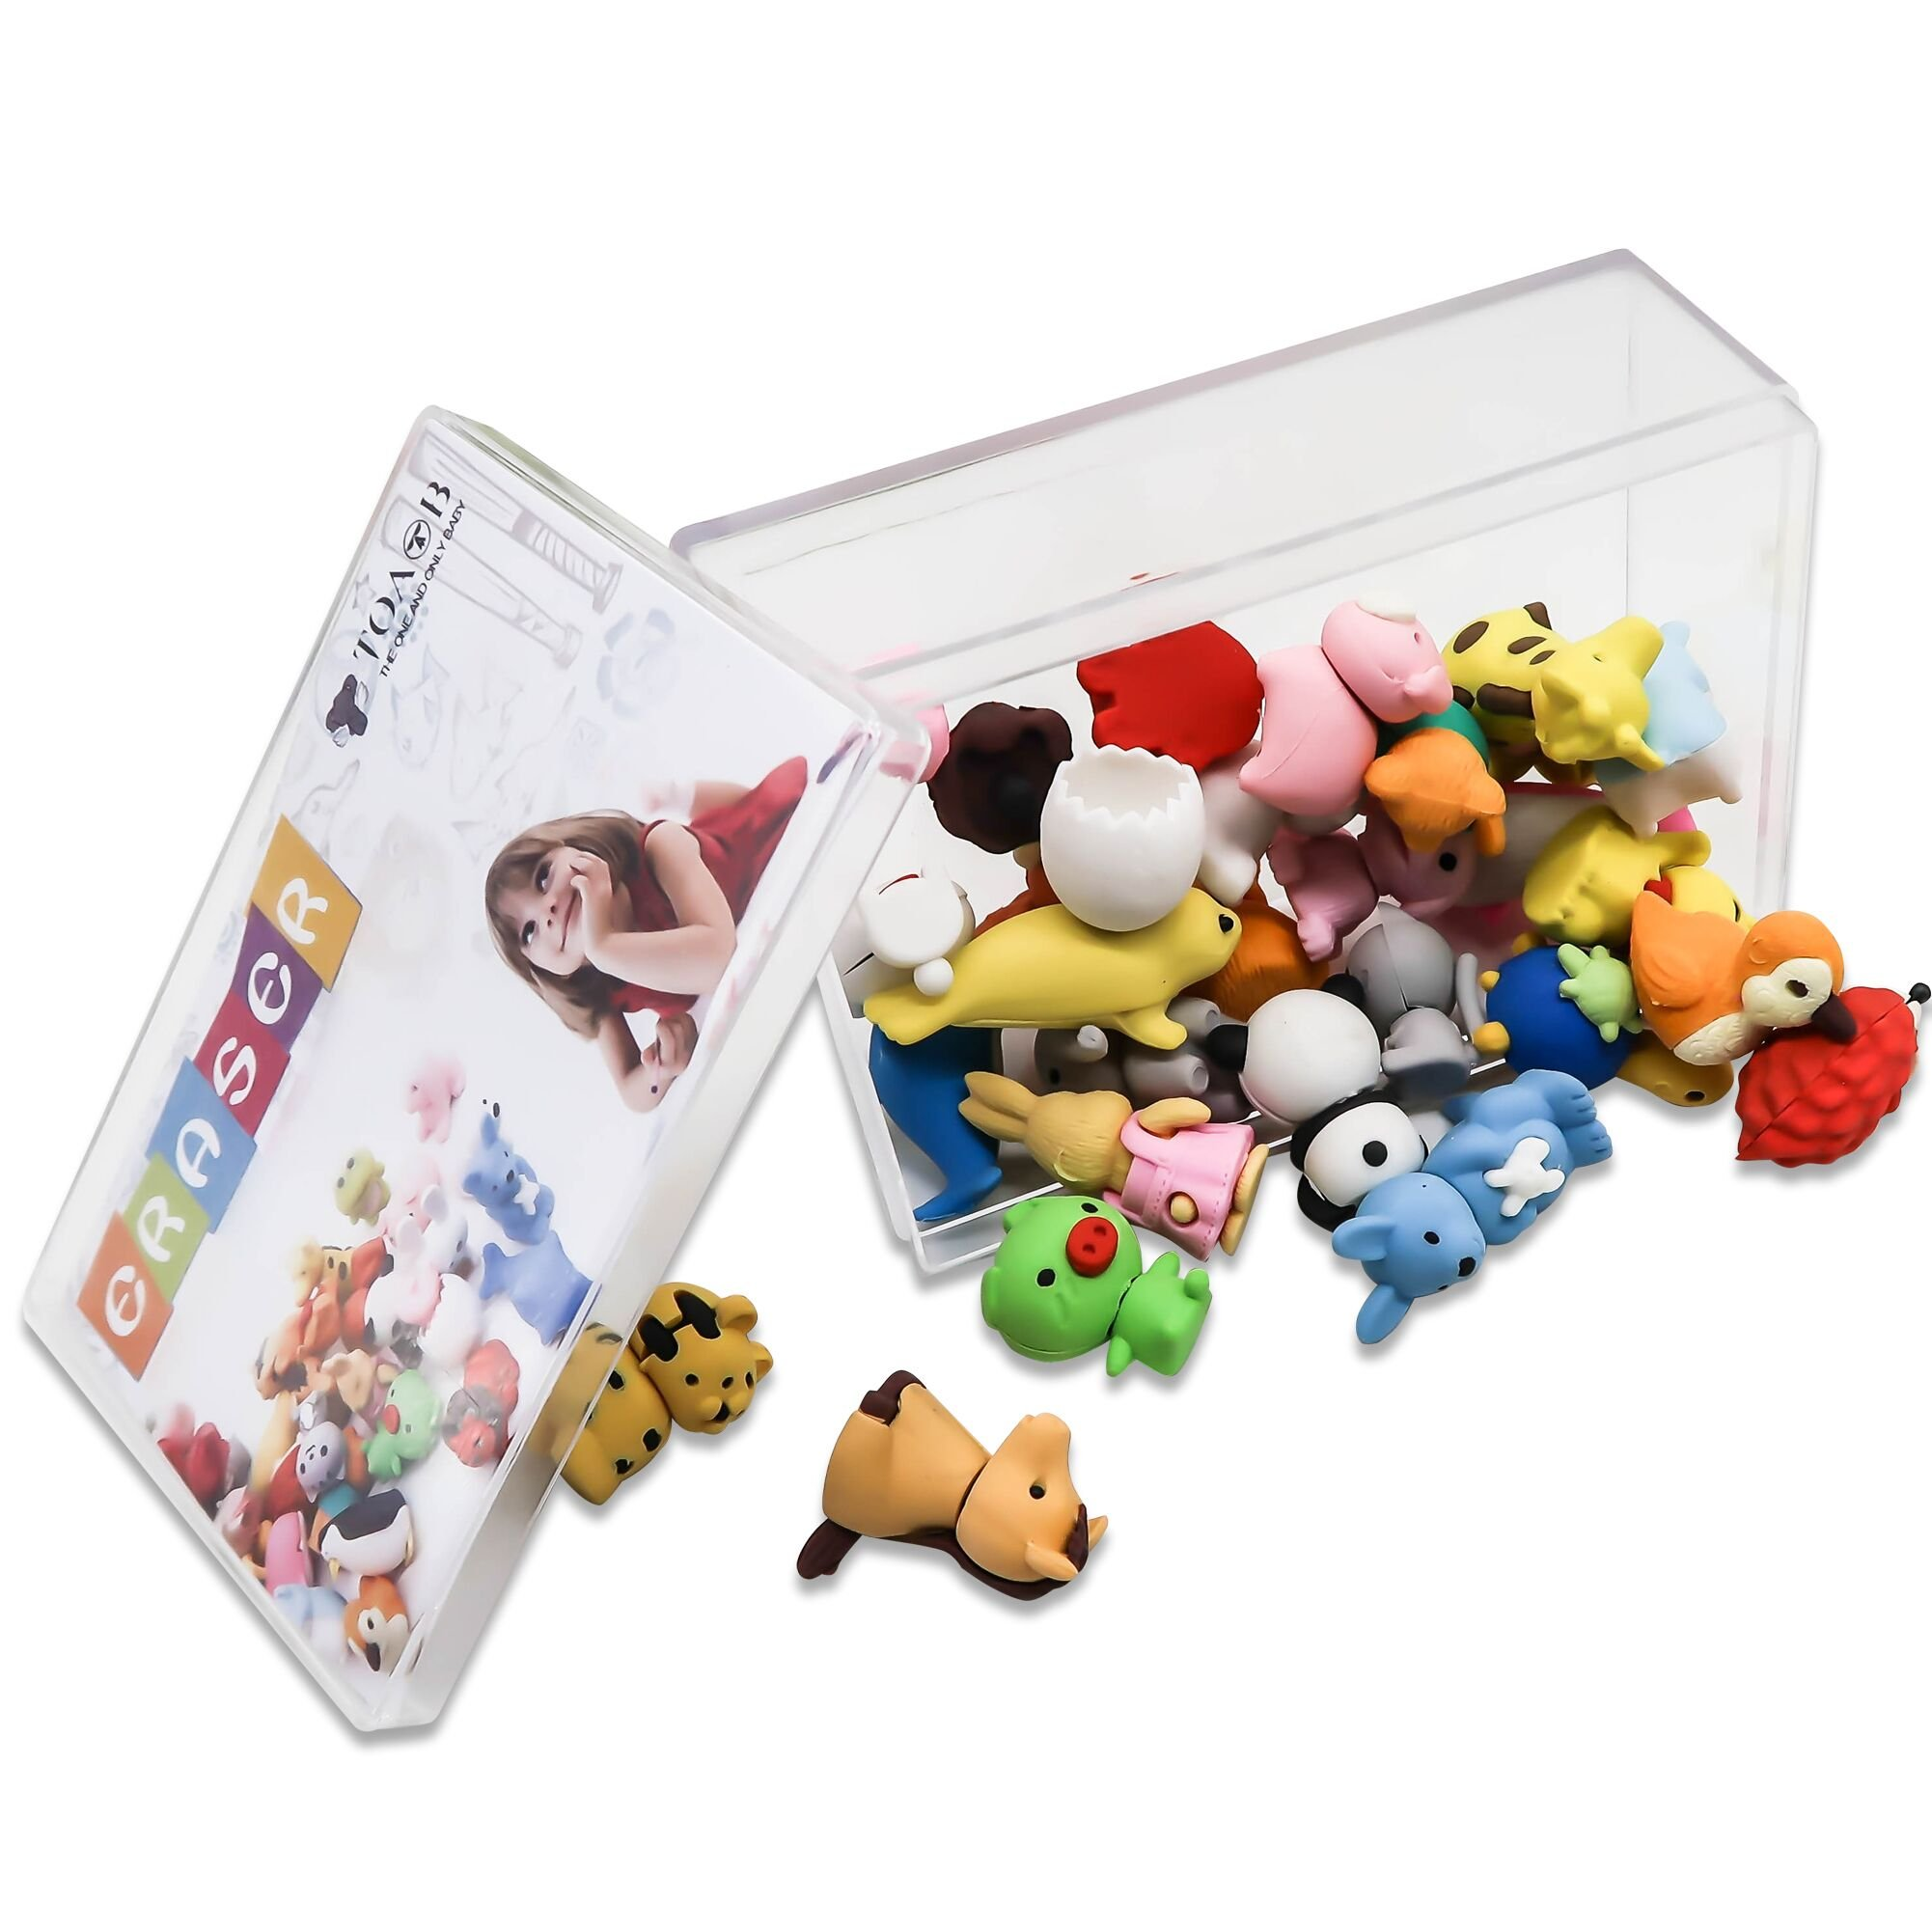 TOAOB 28pcs Adorable Puzzle Animals Erasers Non-Toxic for Kids Fun Games and Collection with Plastic Box by TOAOB (Image #4)